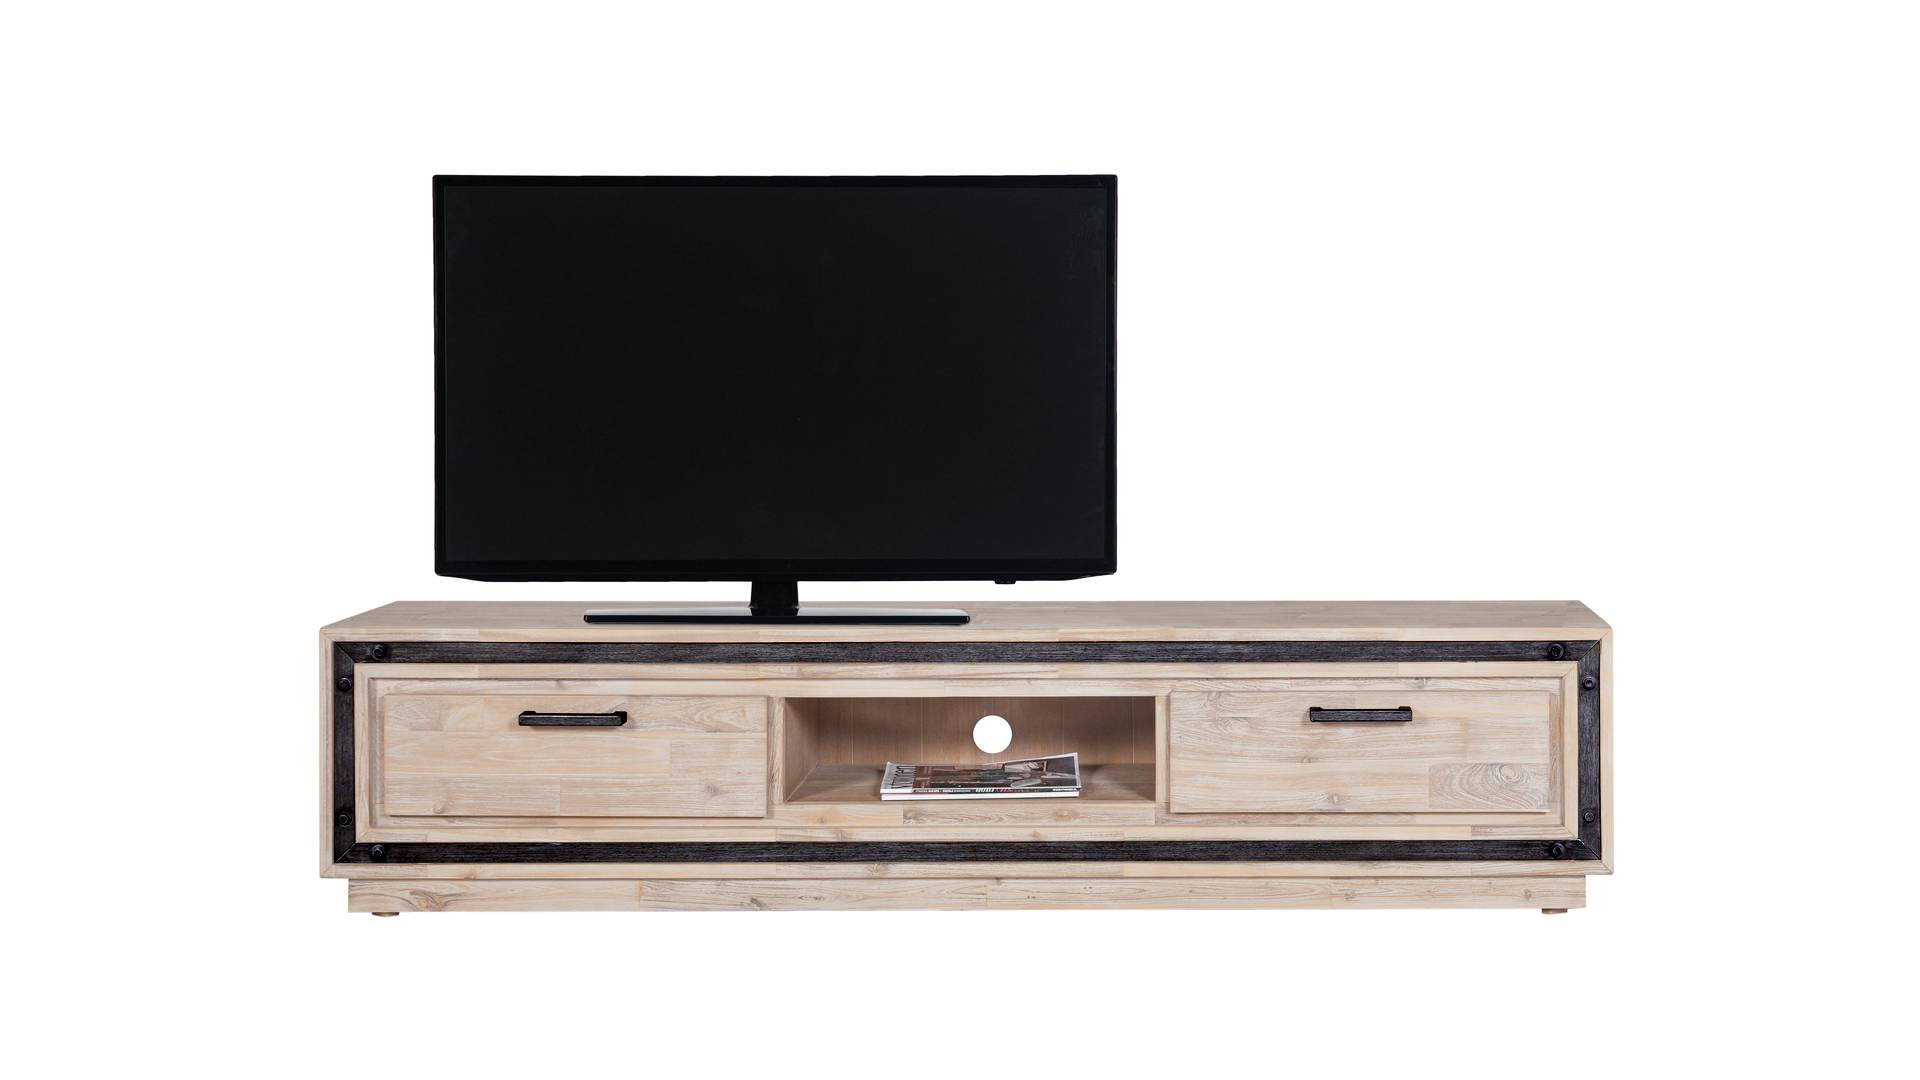 MobilierMoss Mueble TV de madera maciza y metal cepillado - Amylton